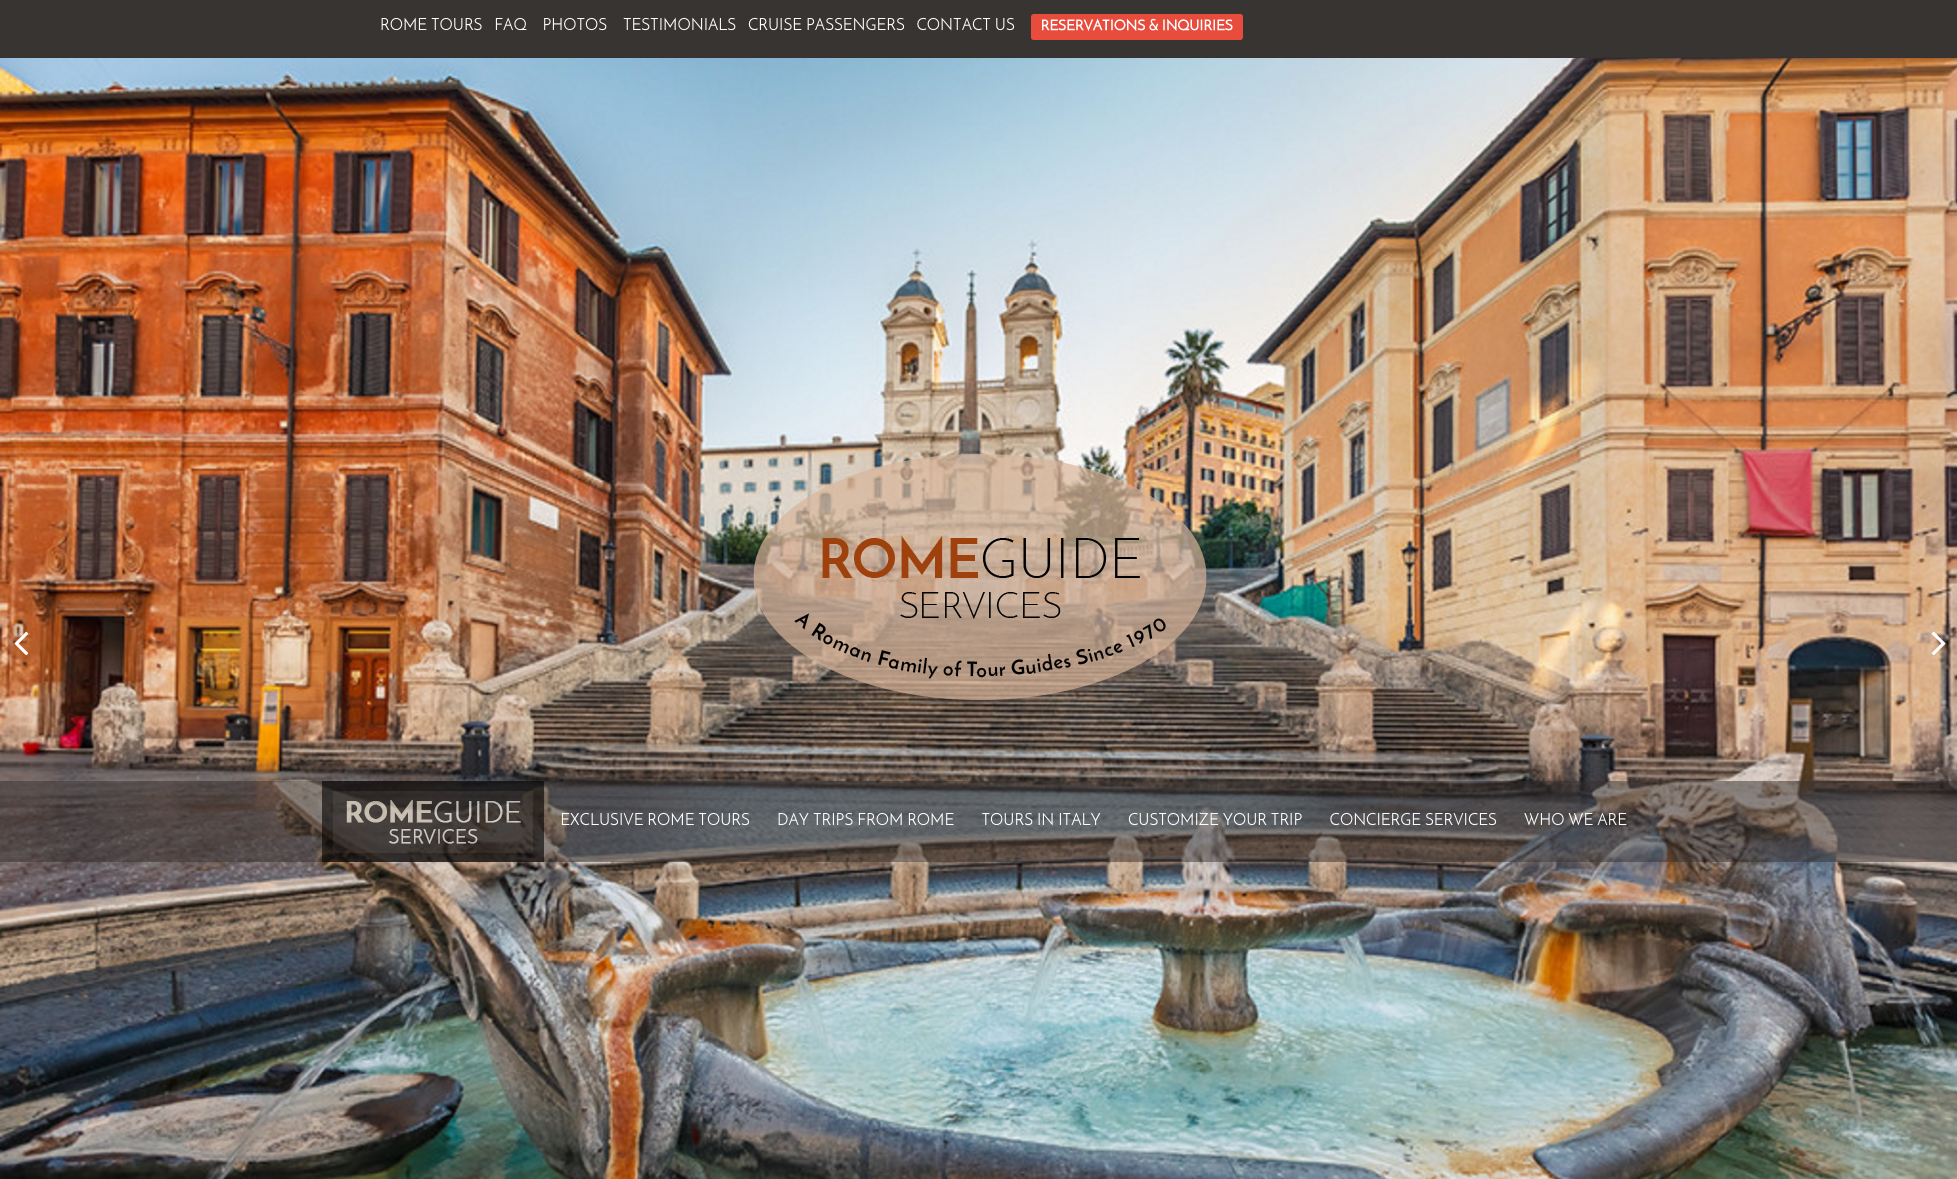 RomeGuideServices